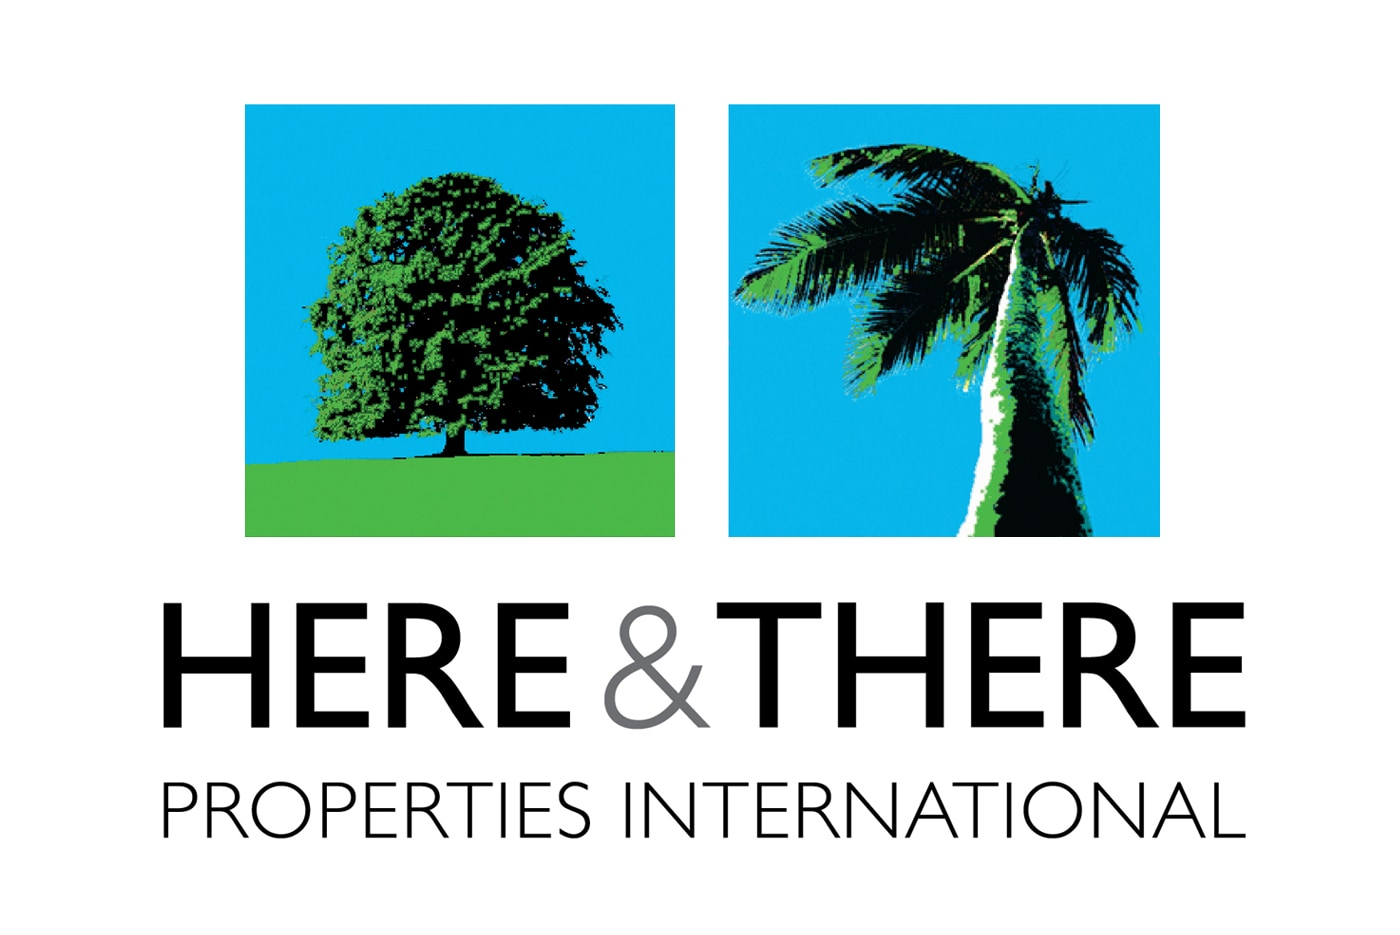 Here & There Properties International